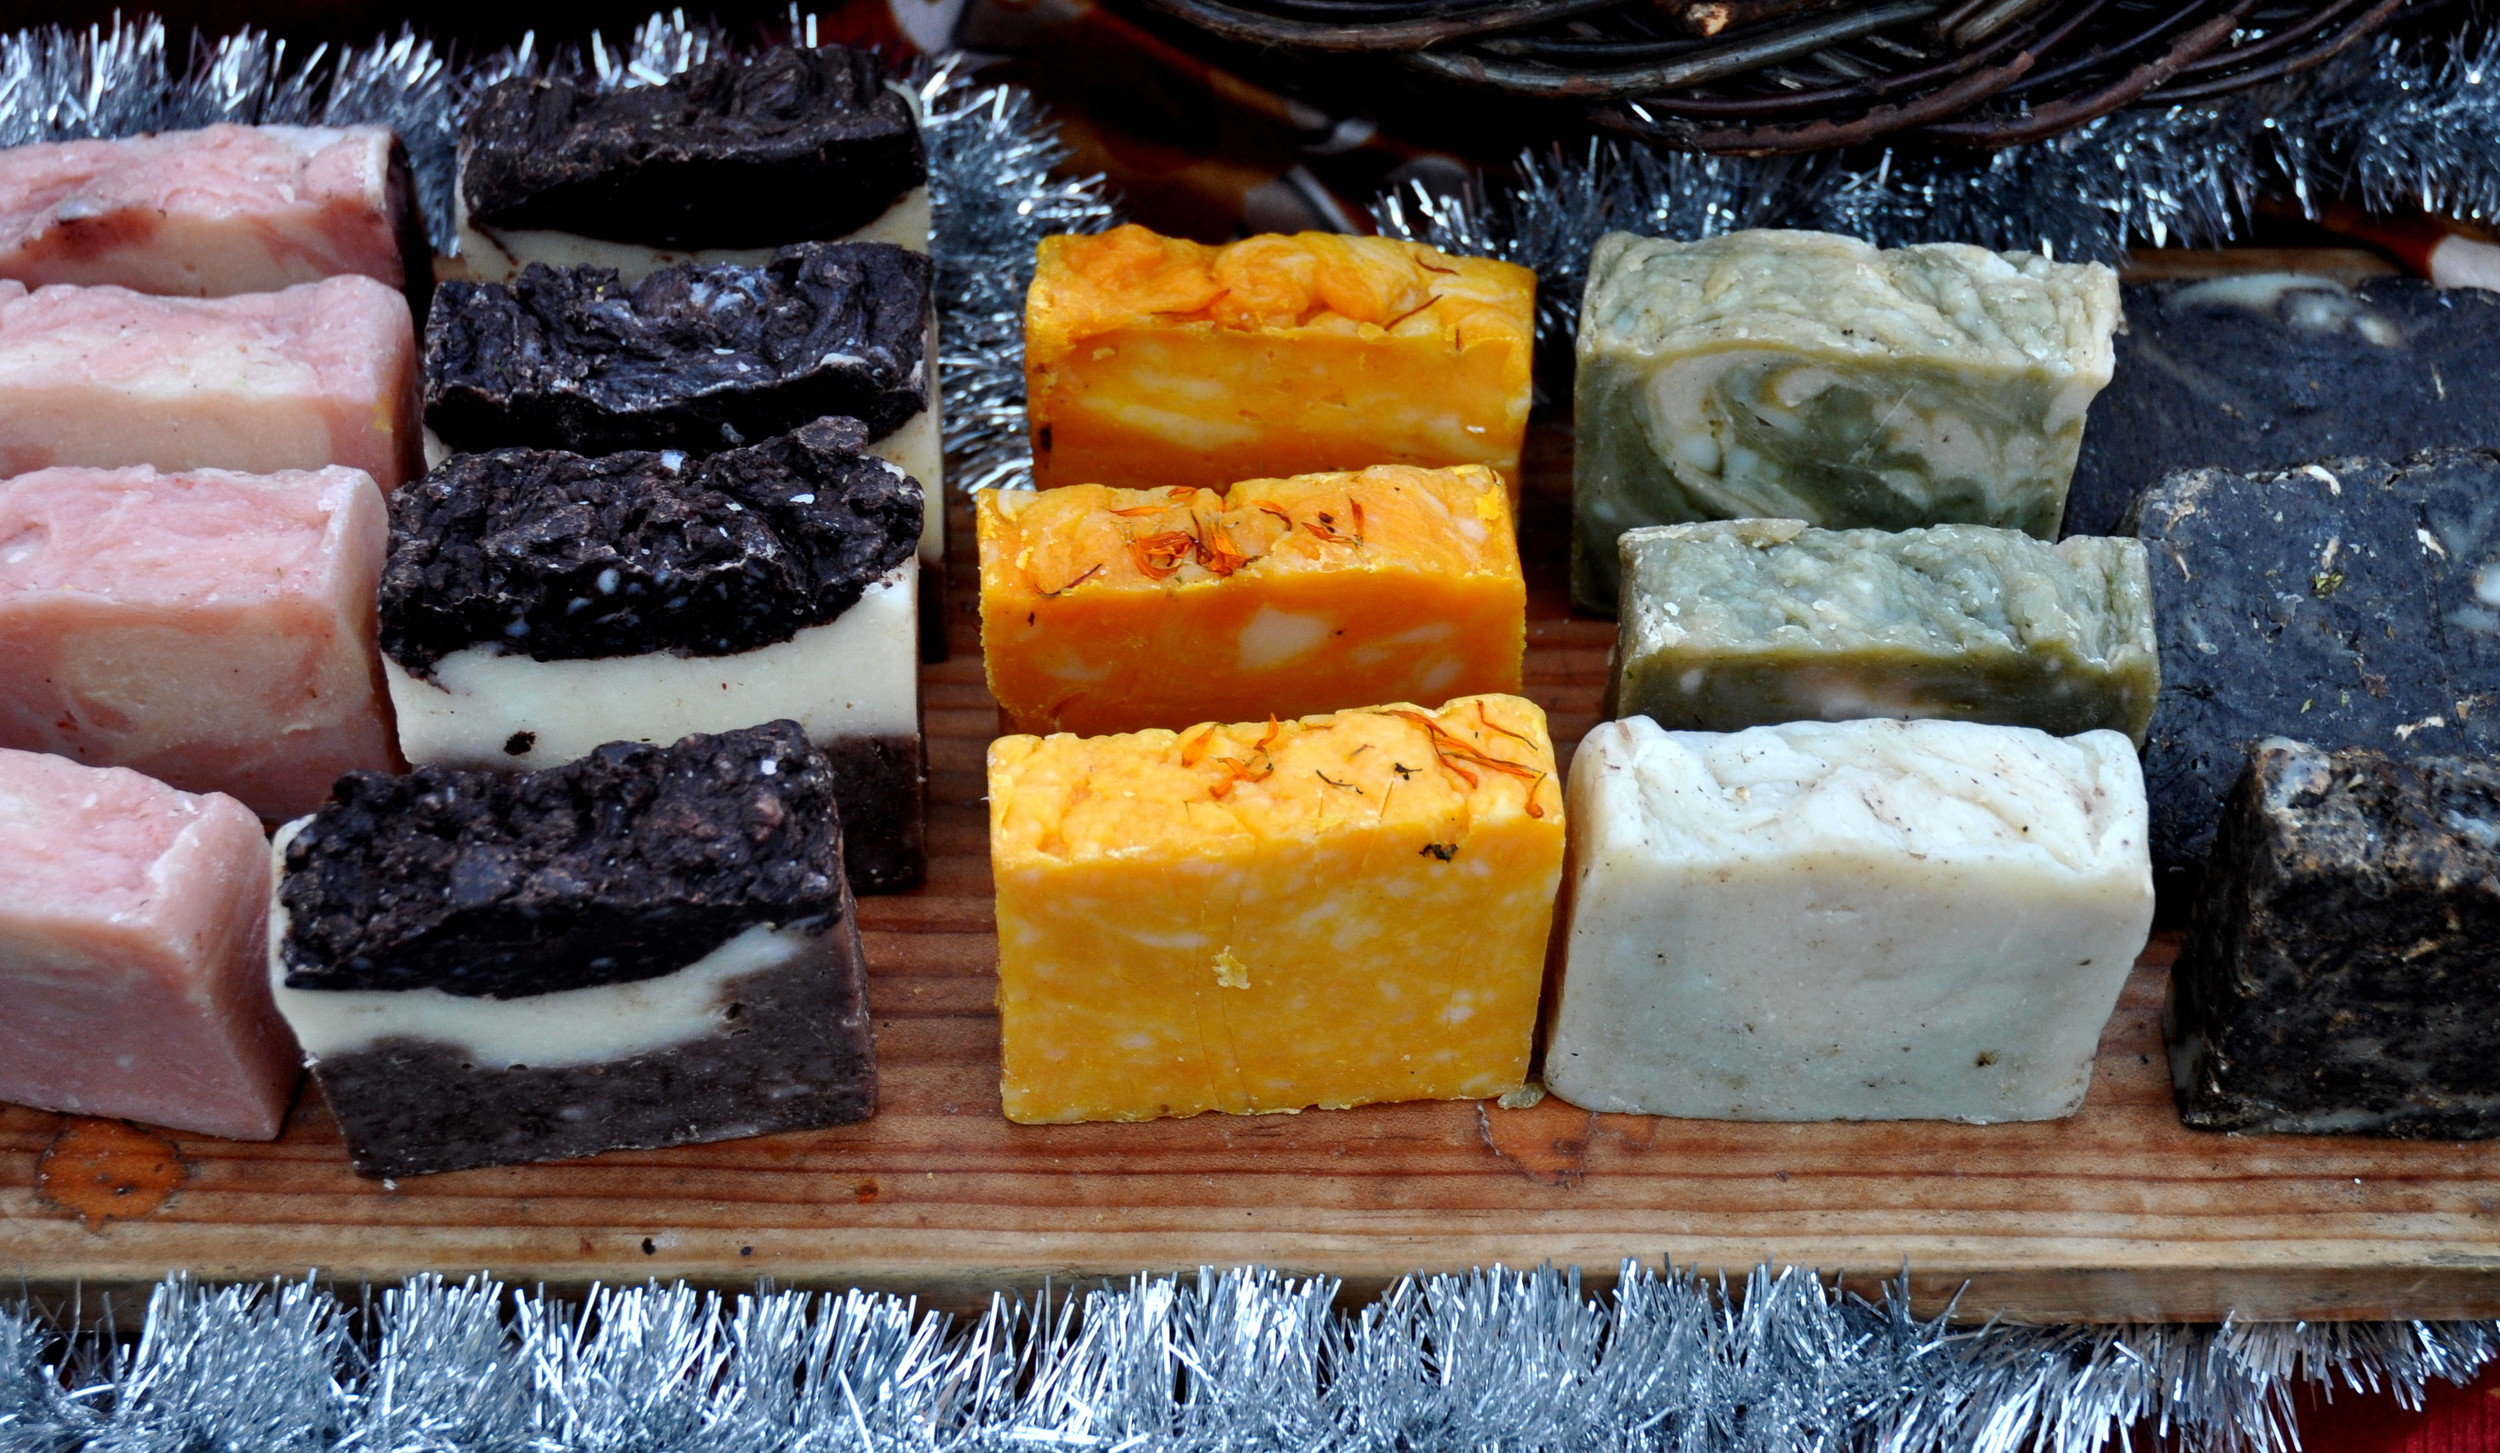 Handmade soaps from Karmela Botanica. Photo copyright 2012 by Zachary D. Lyons.